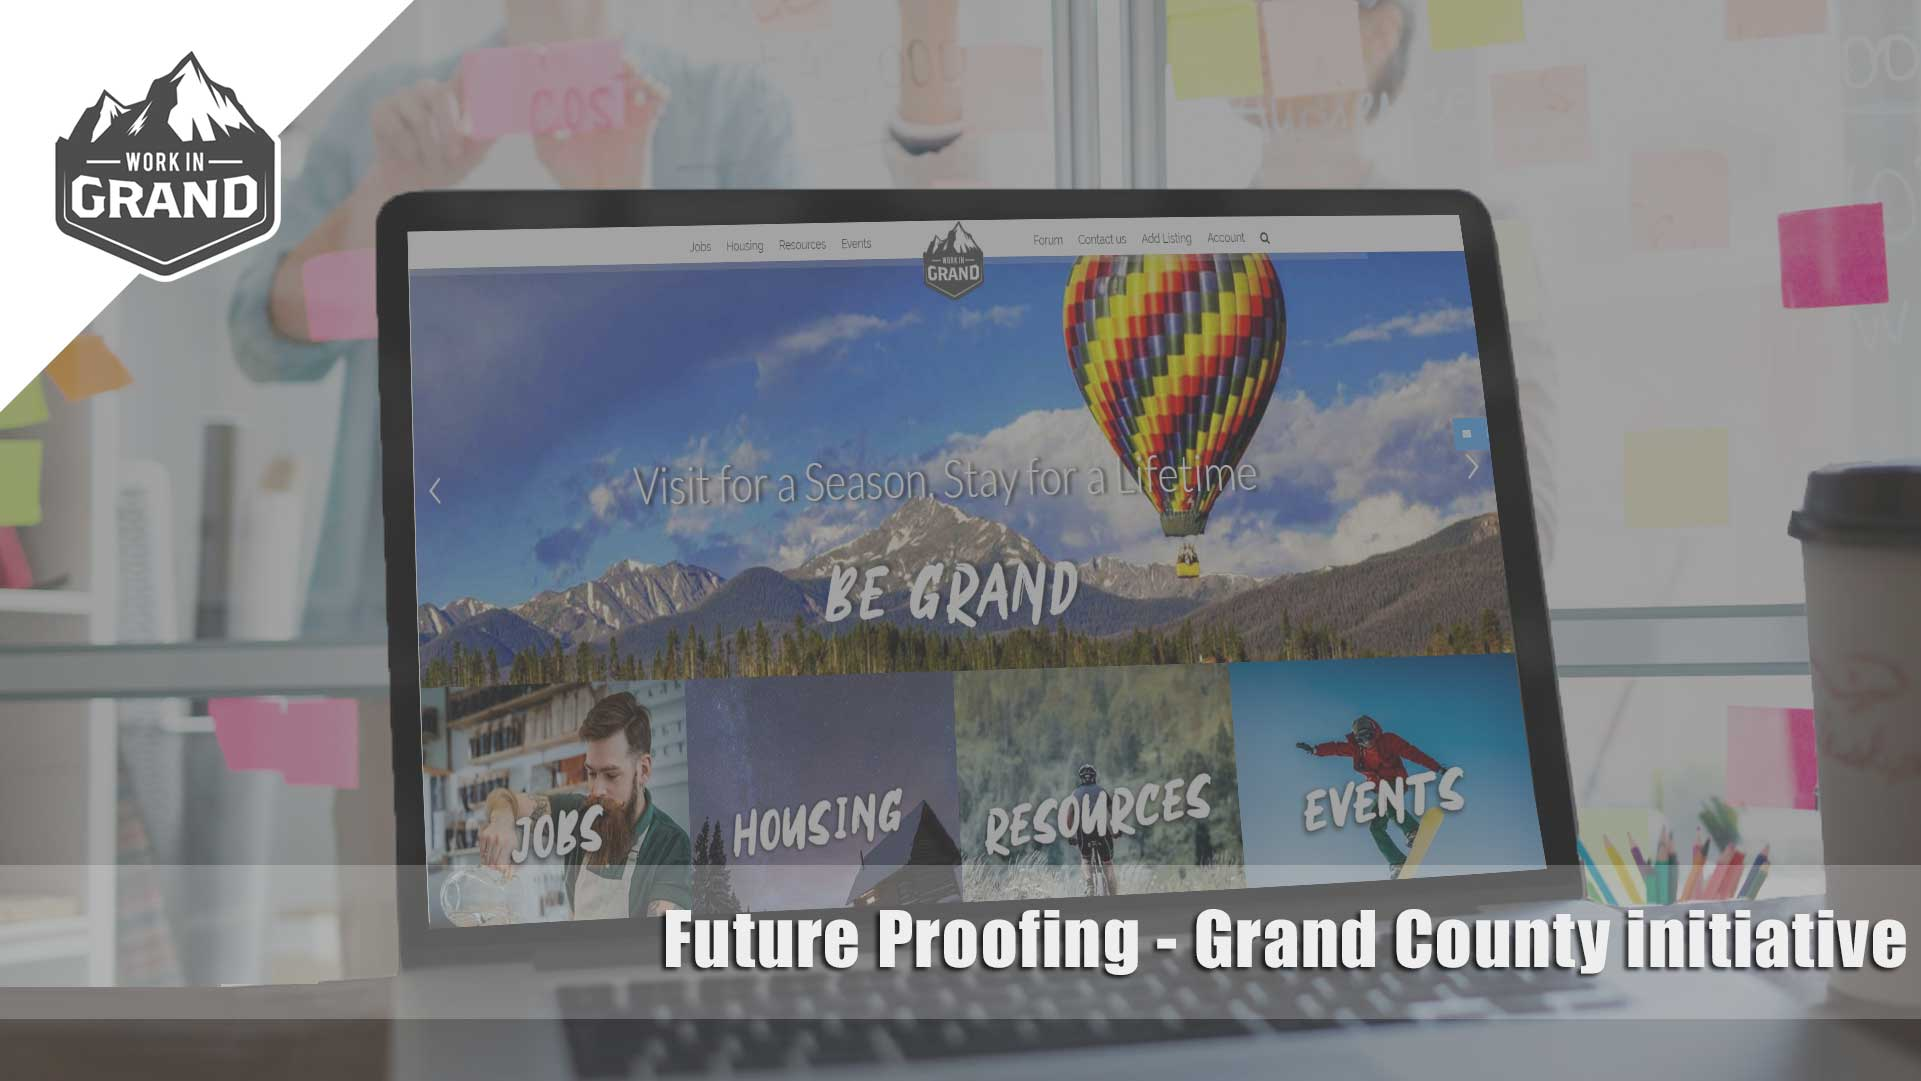 Future Proofing - Grand County Initiative